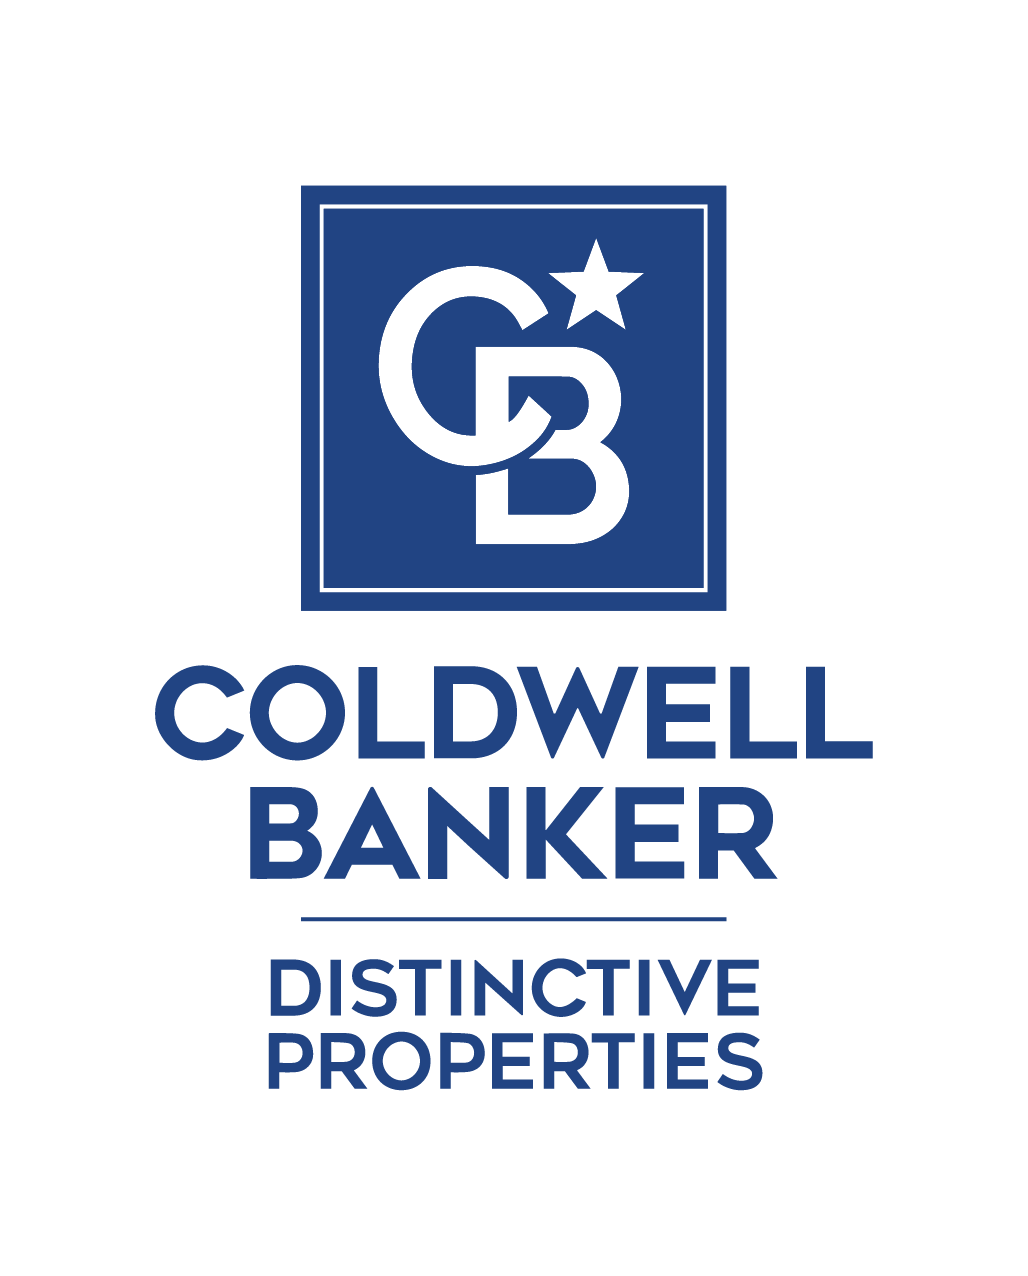 Sharon Stachlowski - Coldwell Banker Distinctive Properties Logo